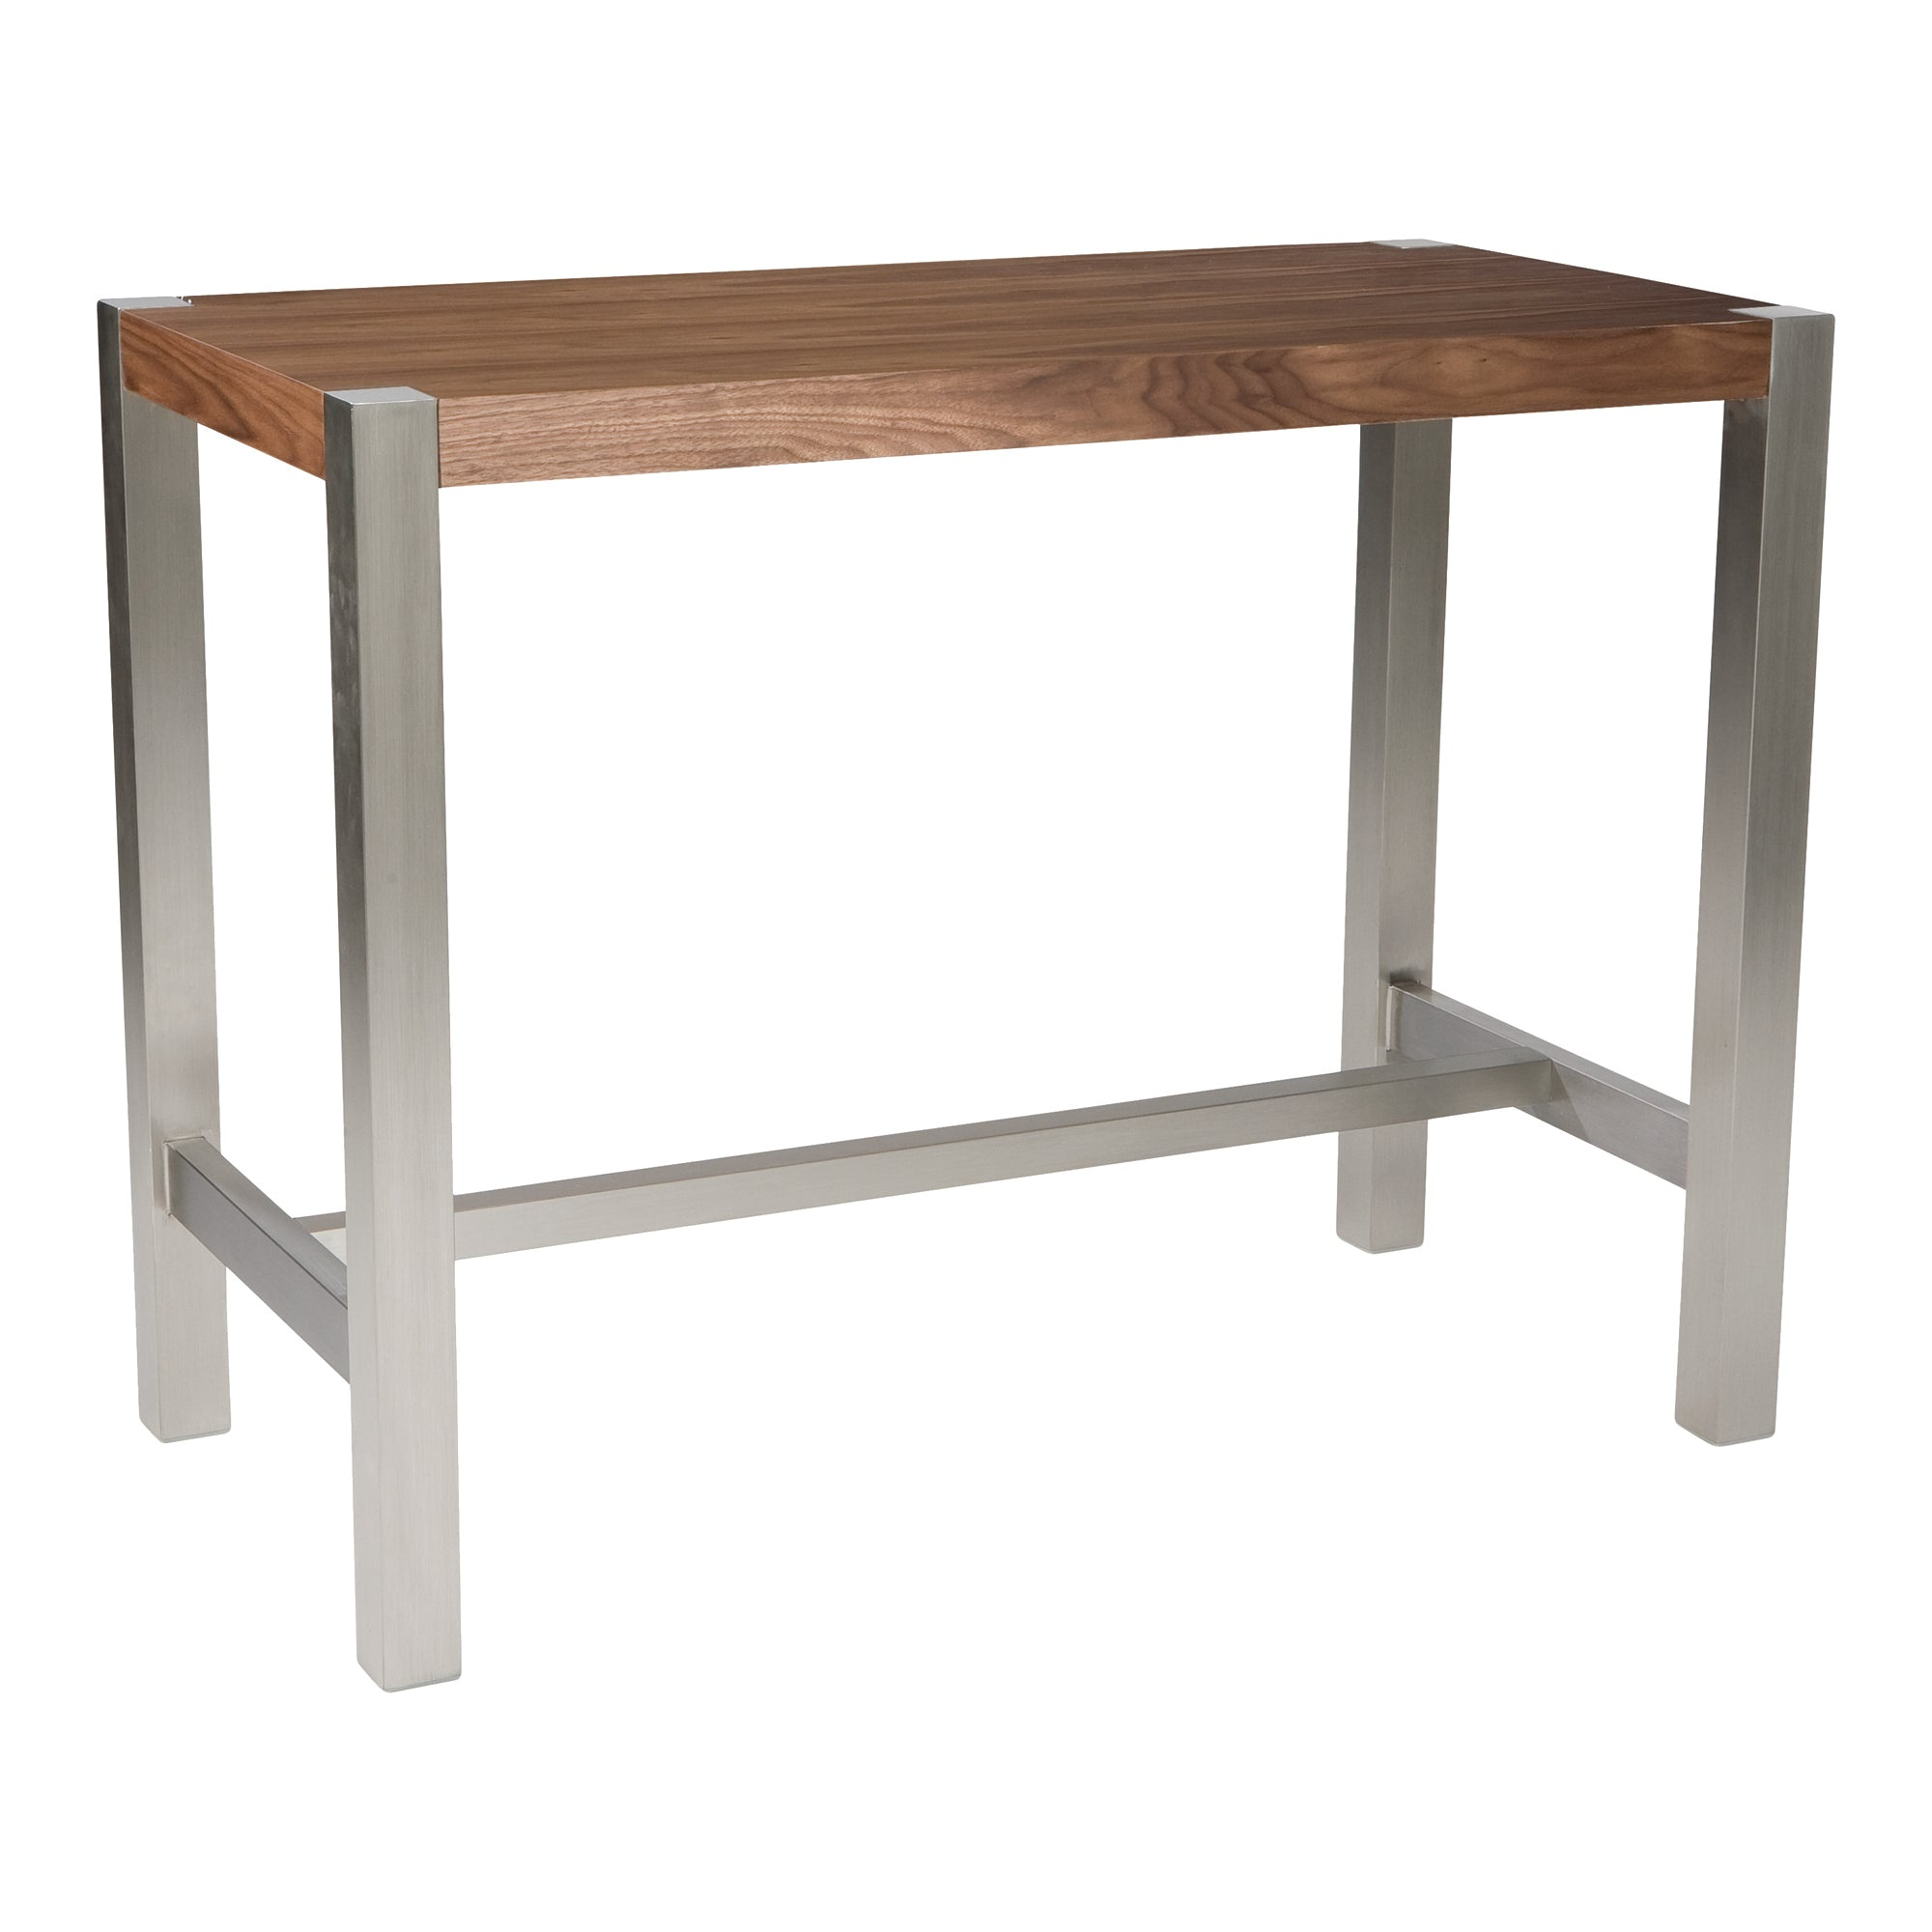 MOES-RIVA COUNTERTABLE-Counter Tables-MODTEMPO